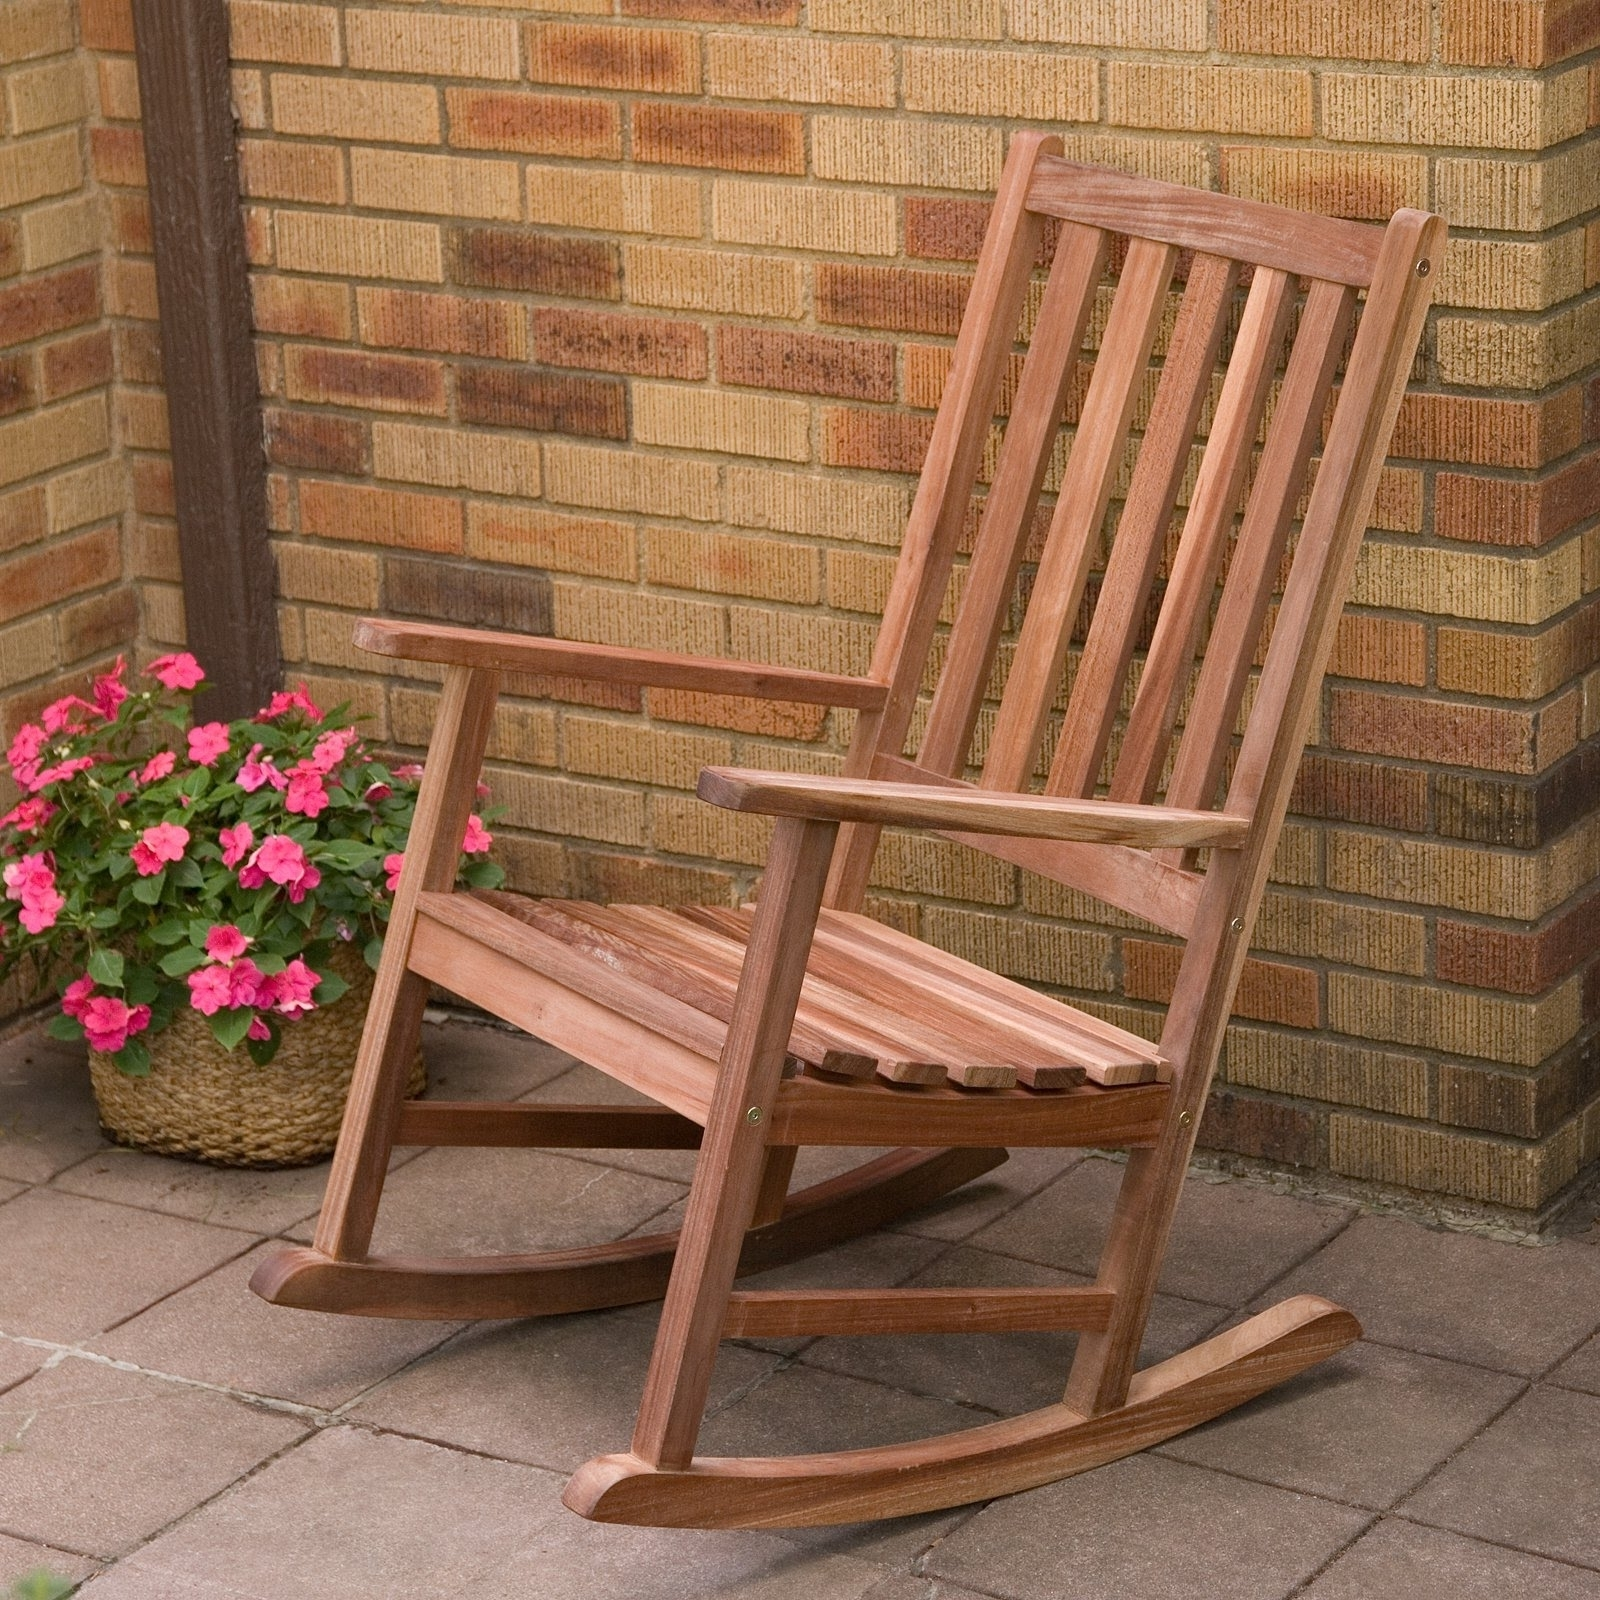 Patio & Garden : Outdoor Rocking Chair Lowes Outdoor Rocking Chair Within Most Recently Released Wicker Rocking Chairs And Ottoman (View 13 of 15)